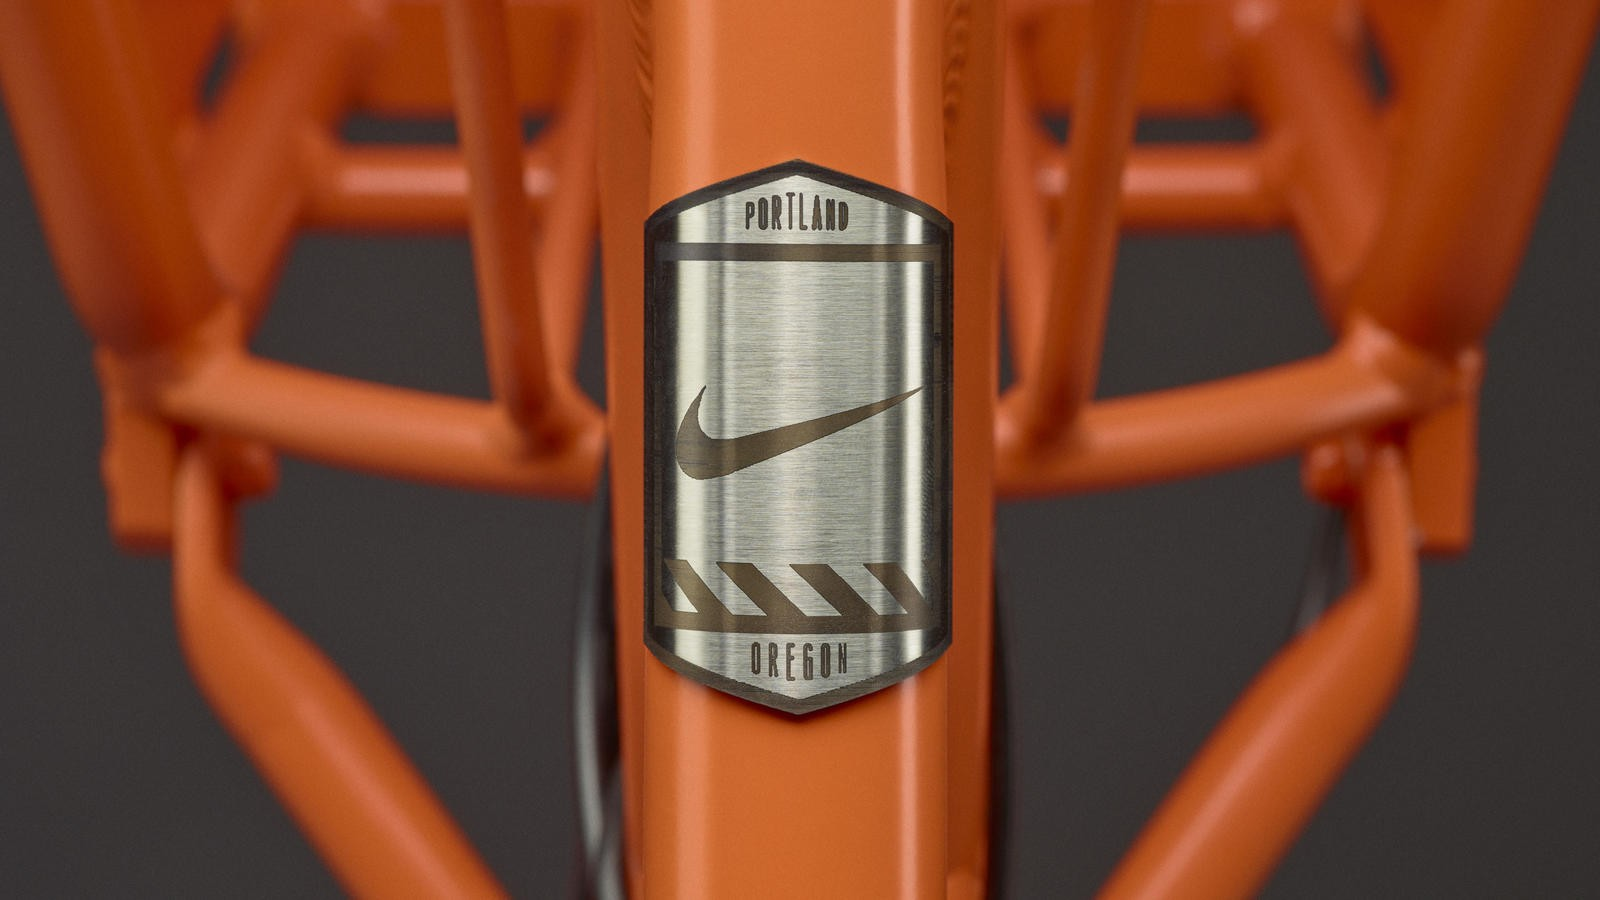 The ubiquitous Swoosh now comes to head tubes with Nike's BIKETOWN bike-share program in Portland, Oregon